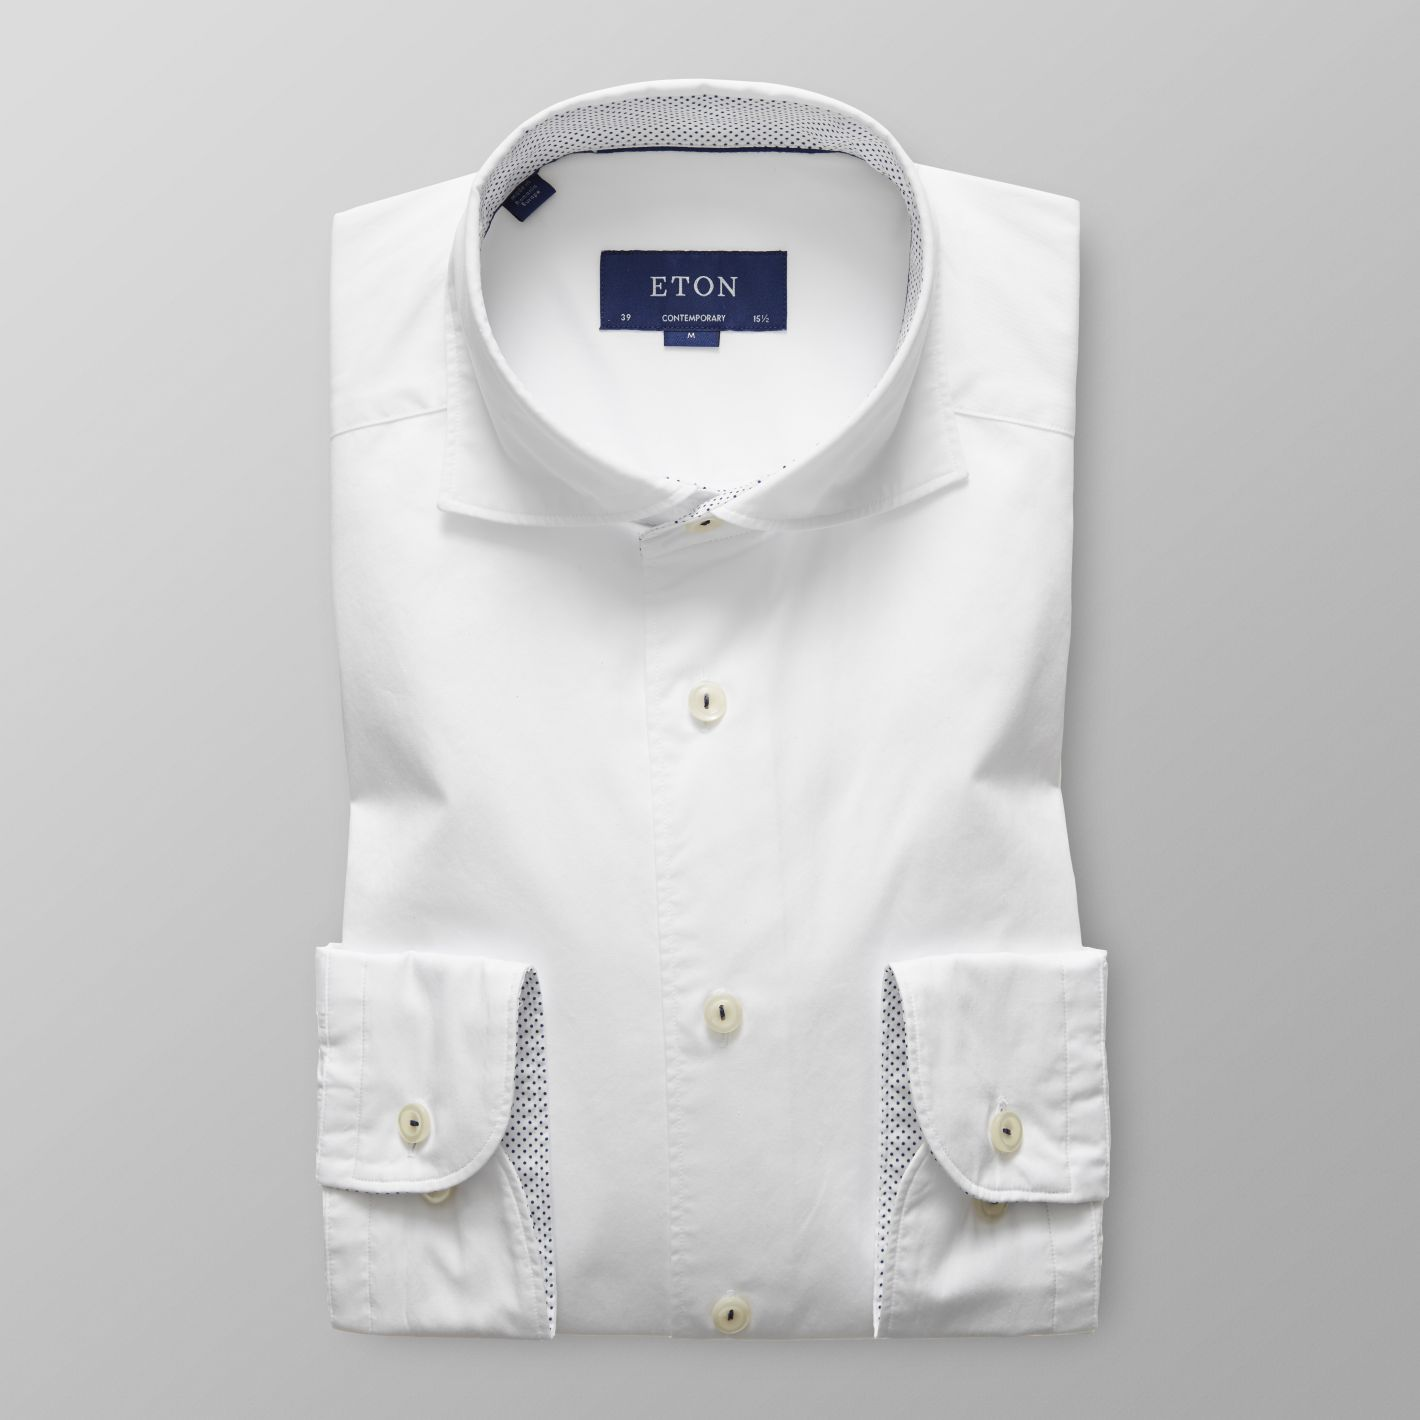 White Contrast Detail Shirt      ETON      $195